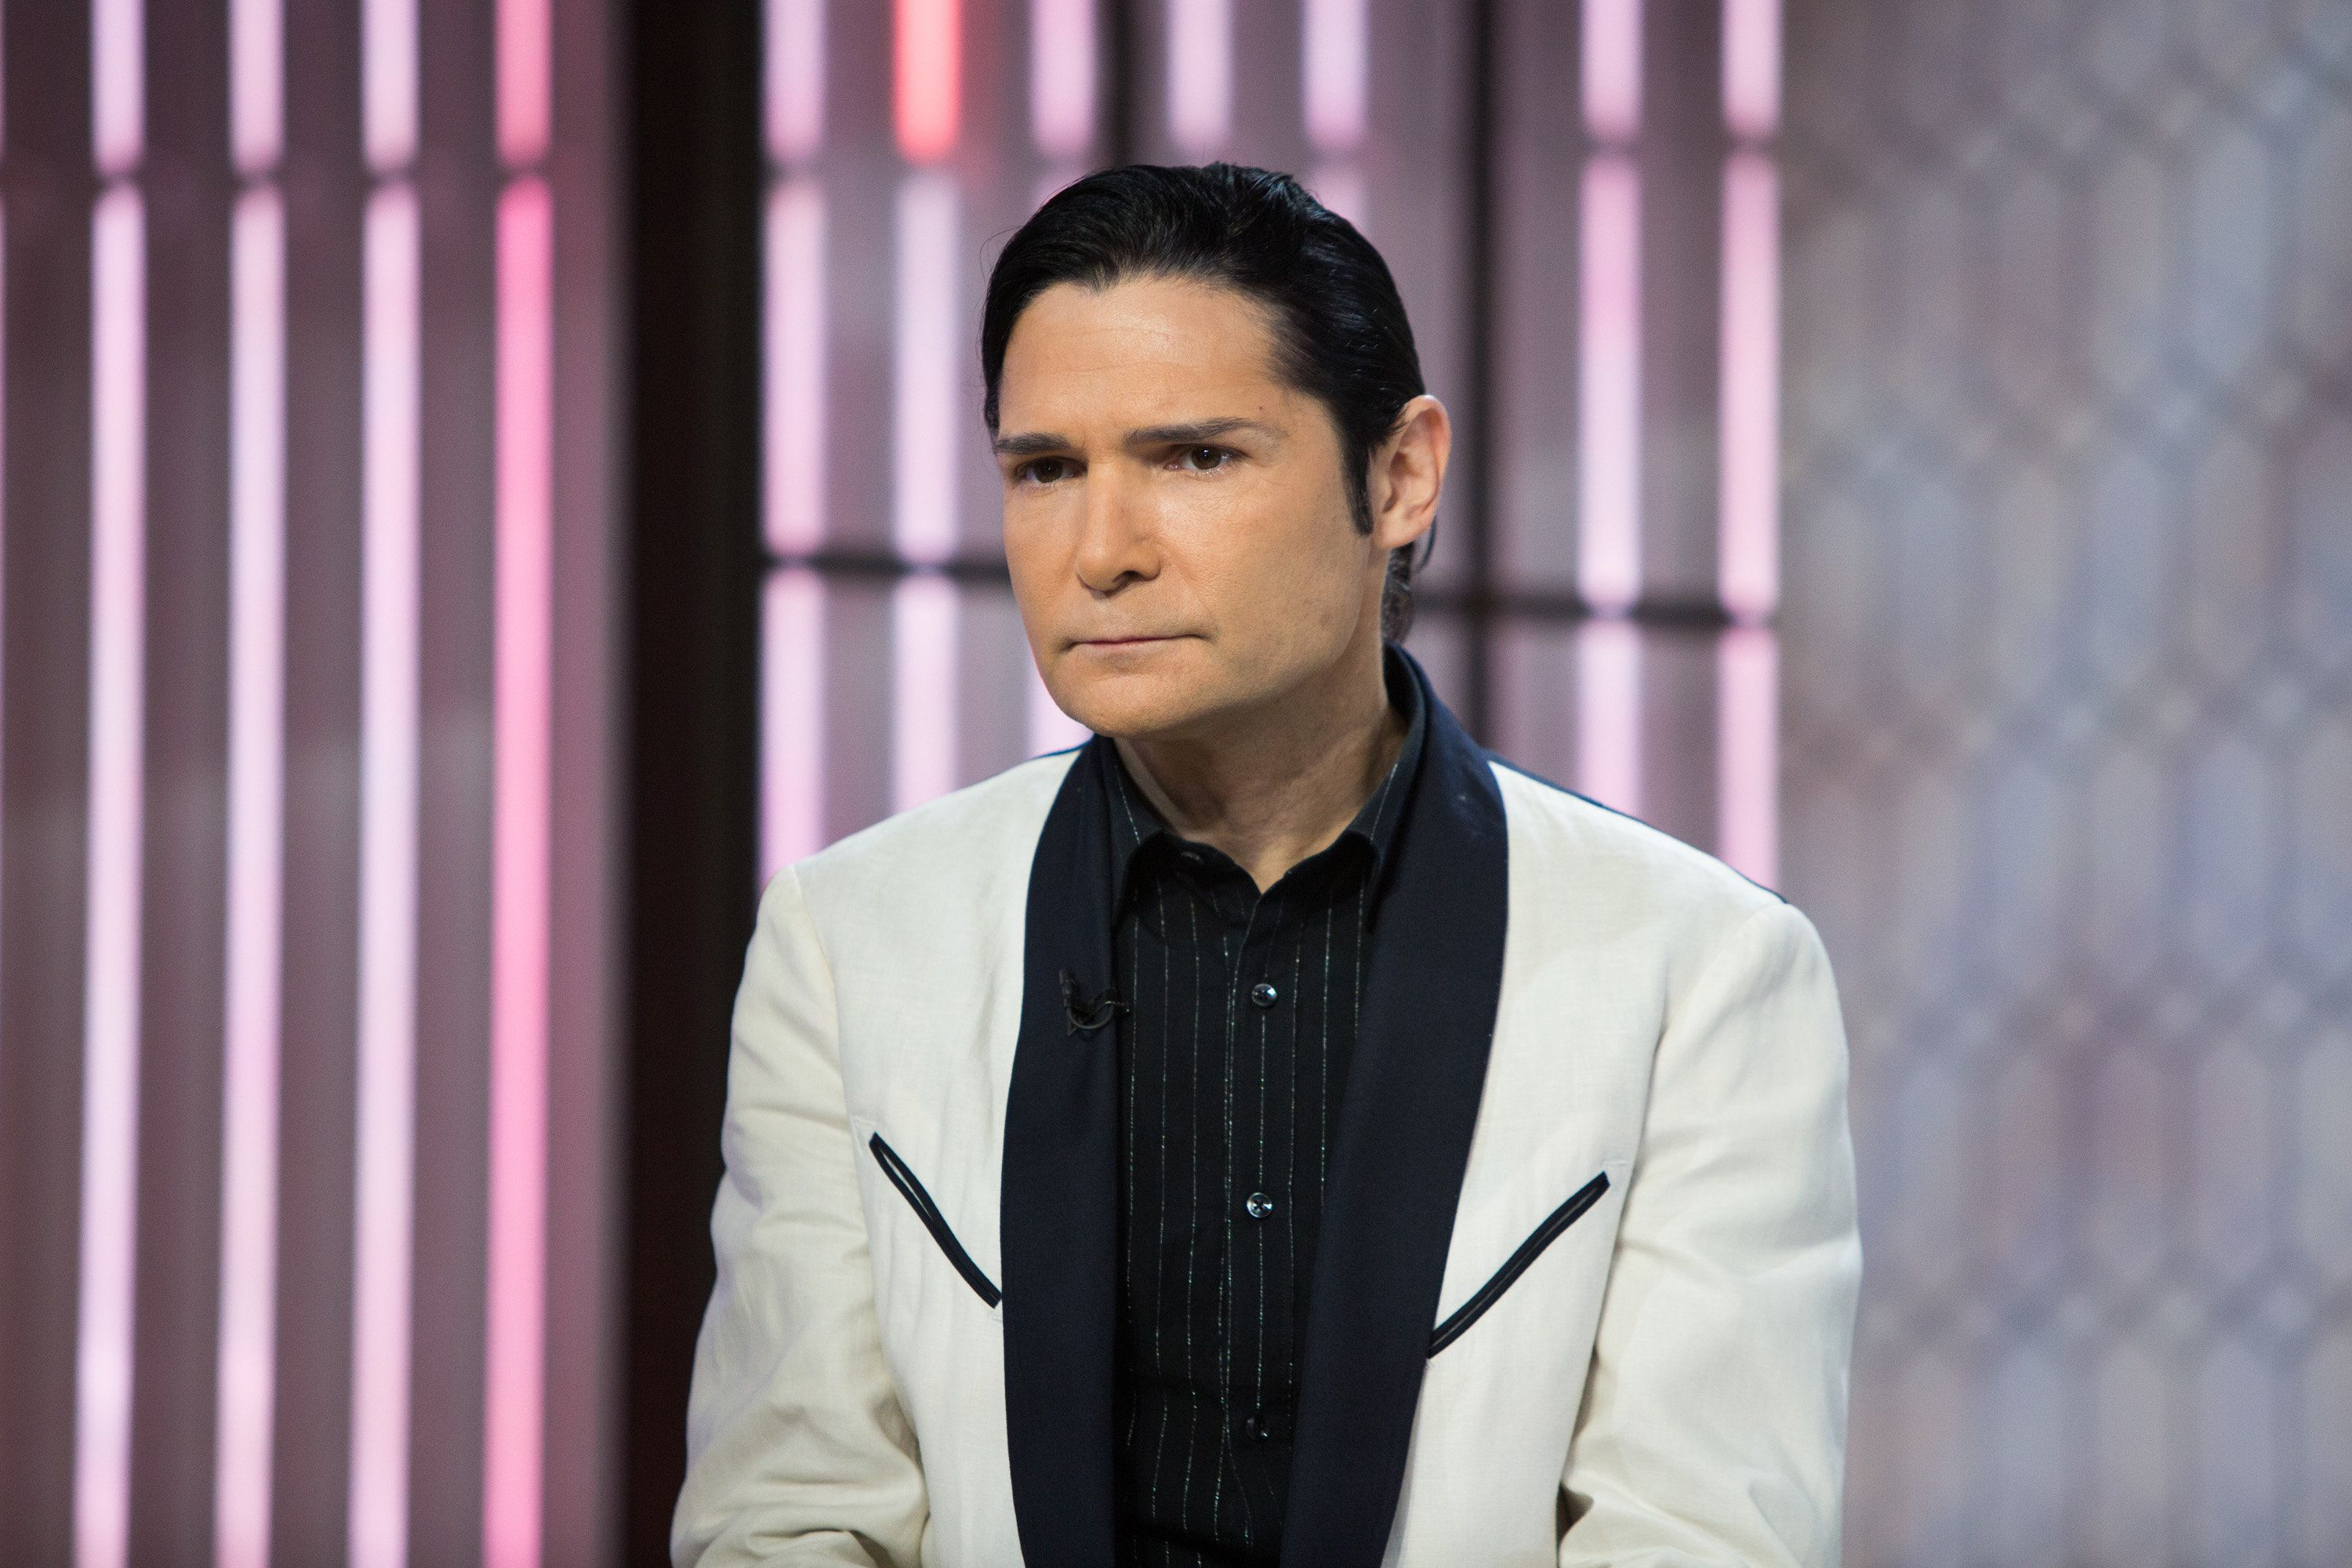 Corey Feldman's 1993 audio recordings concerning alleged Hollywood pedophiles have been found